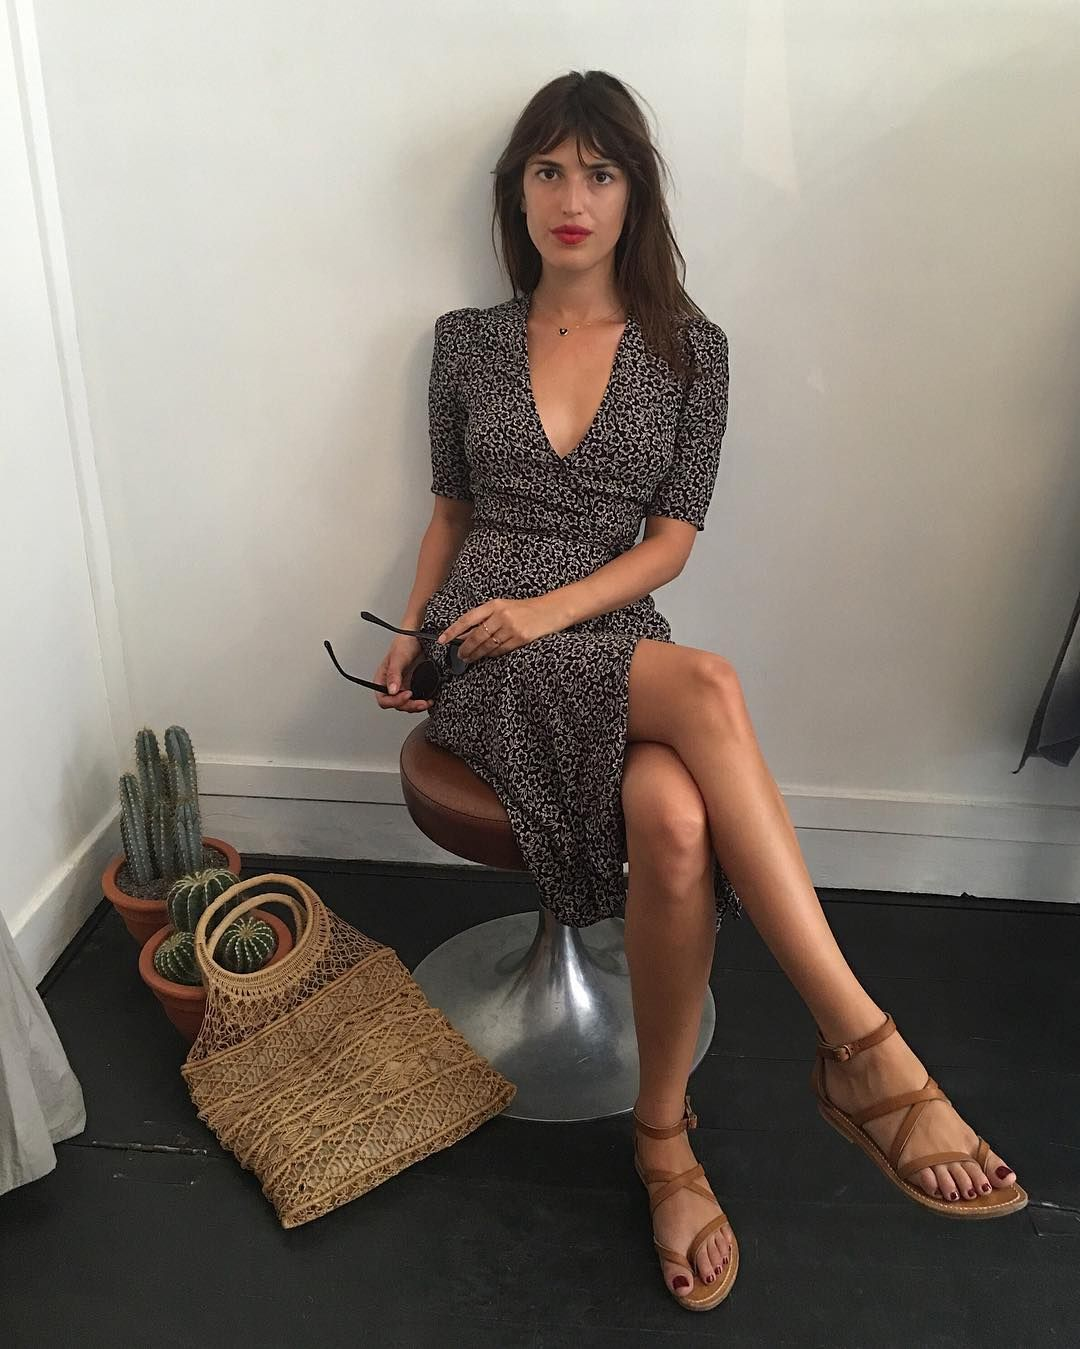 jeanne damas reformation dress style pinterest jeanne damas reformation and attitude. Black Bedroom Furniture Sets. Home Design Ideas